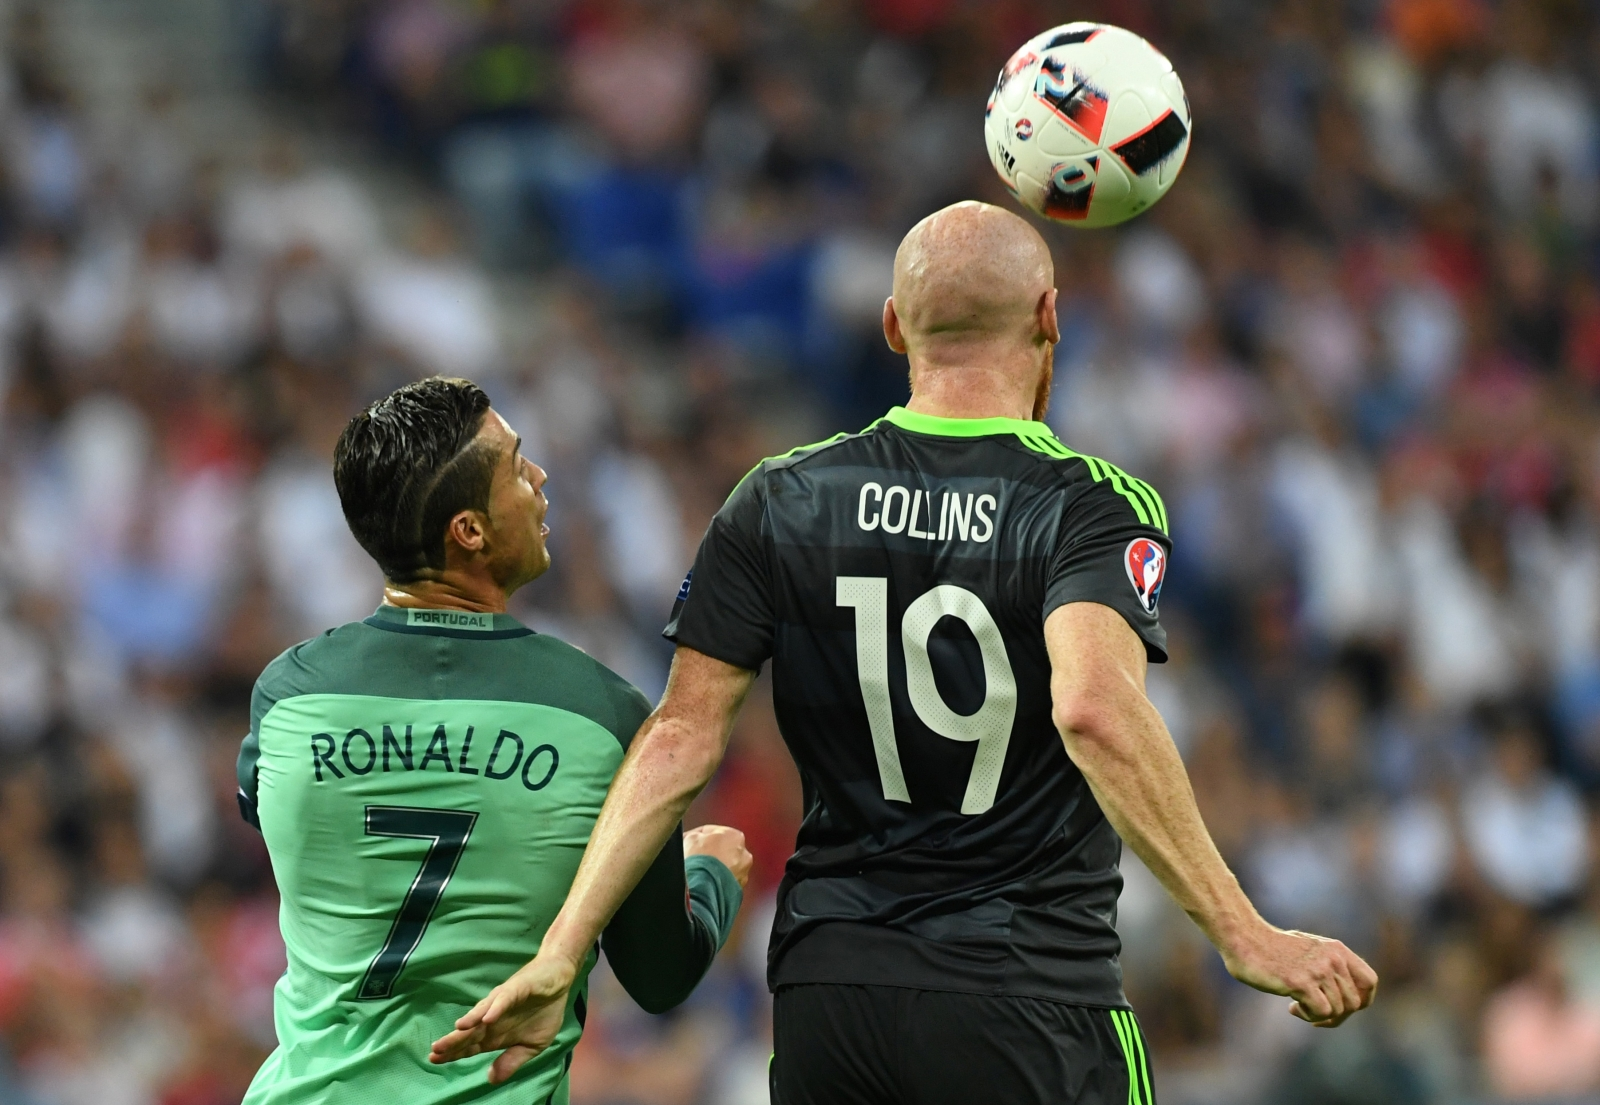 Collins beats Ronaldo in the air